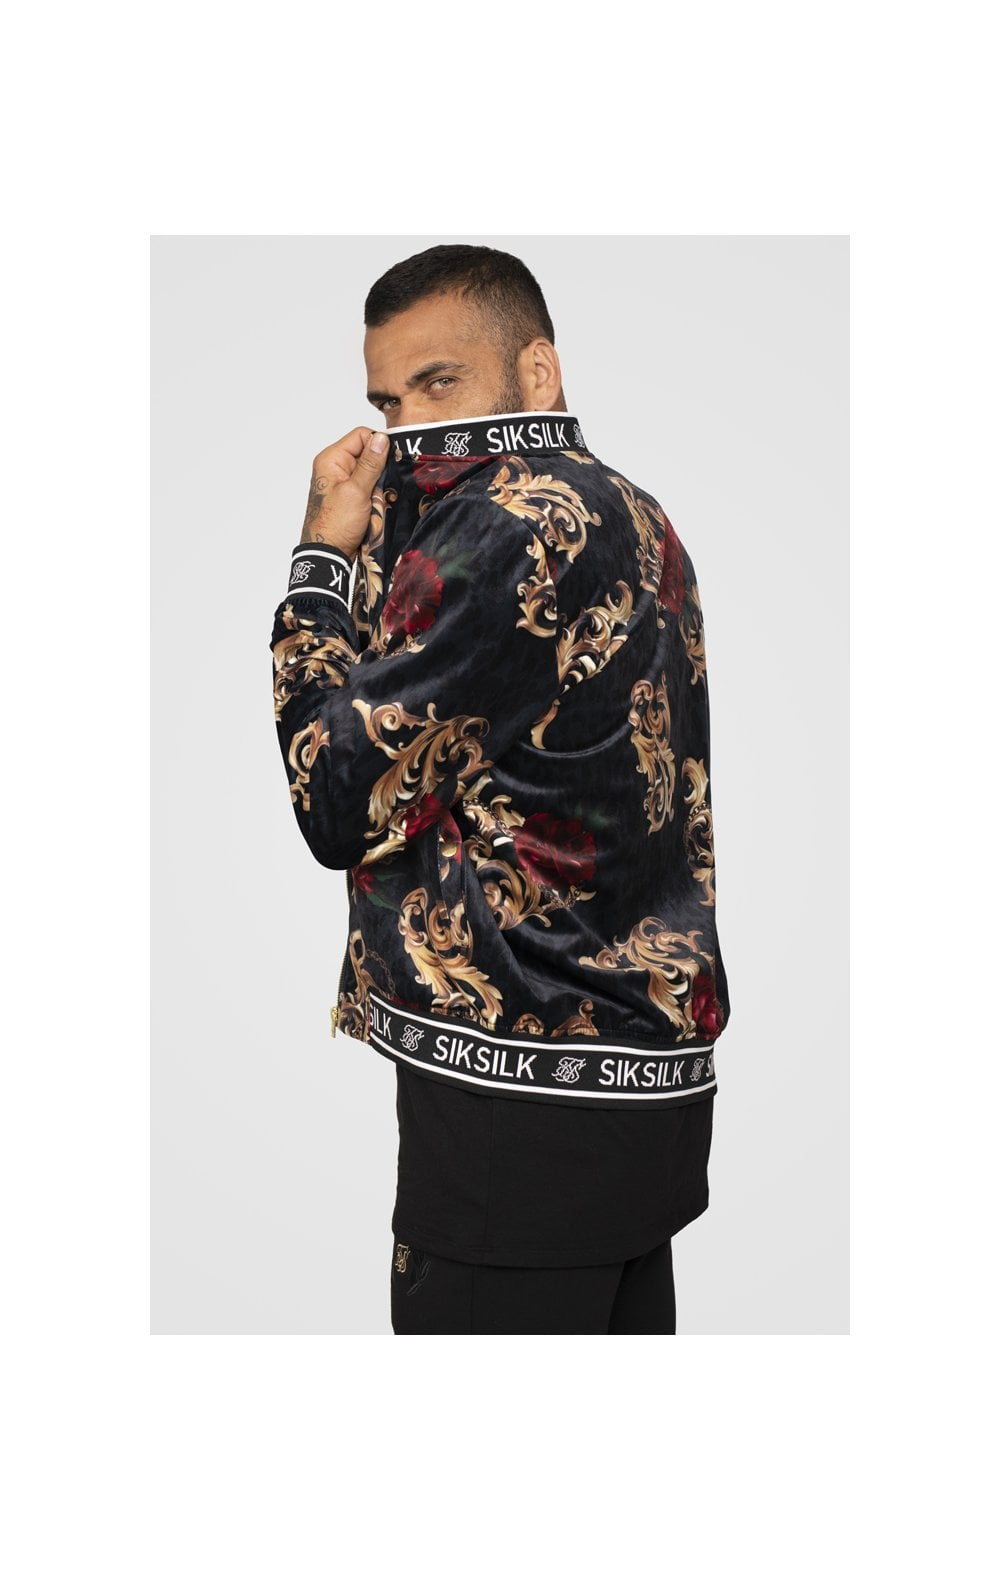 SikSilk x Dani Alves Velour Bomber Jacket - Floral Animal (2)